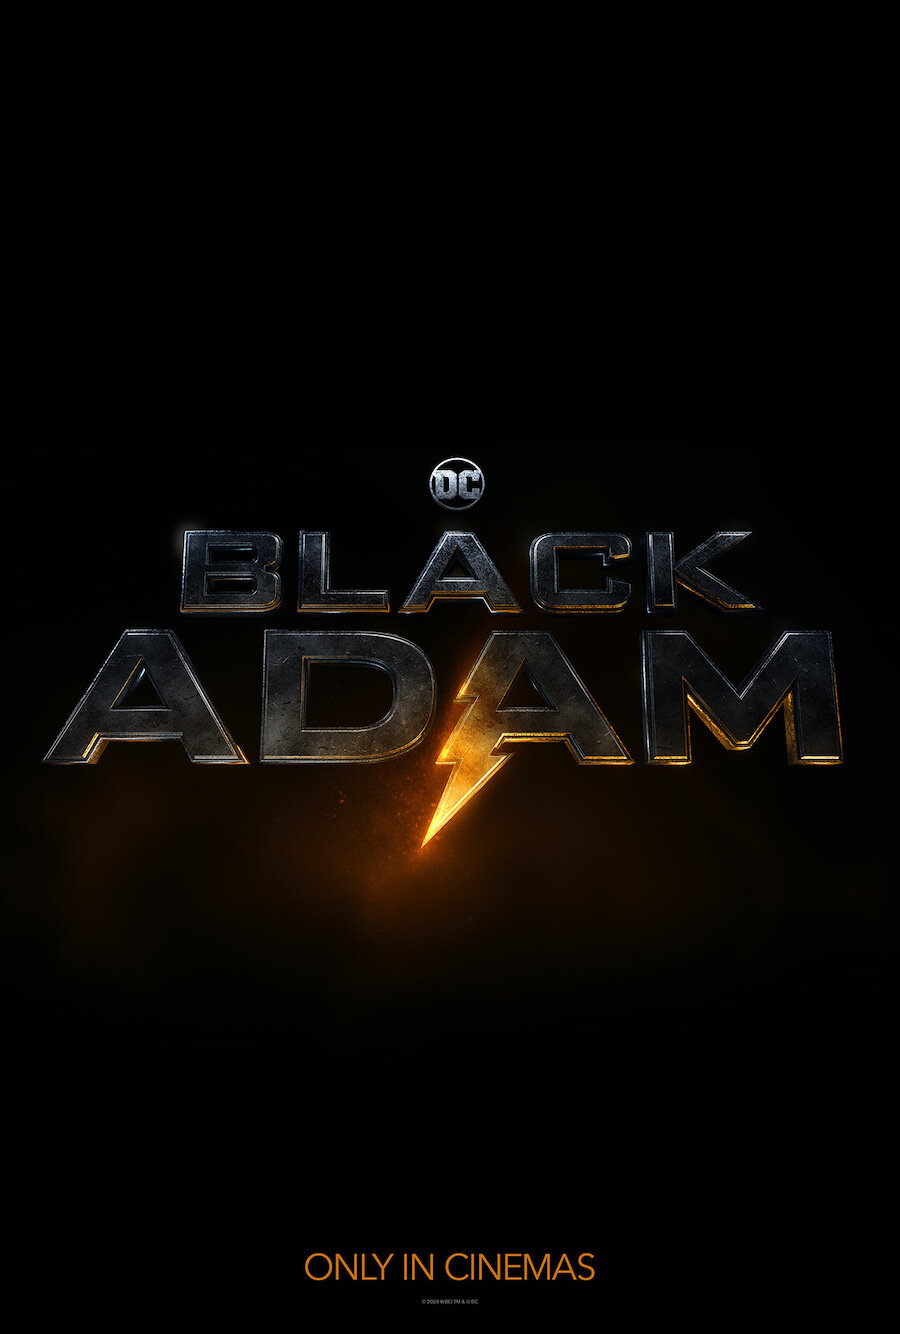 dwayne-johnson-reveals-the-justice-society-characters-coming-to-black-adam-plus-logo-and-concept-art-shared2